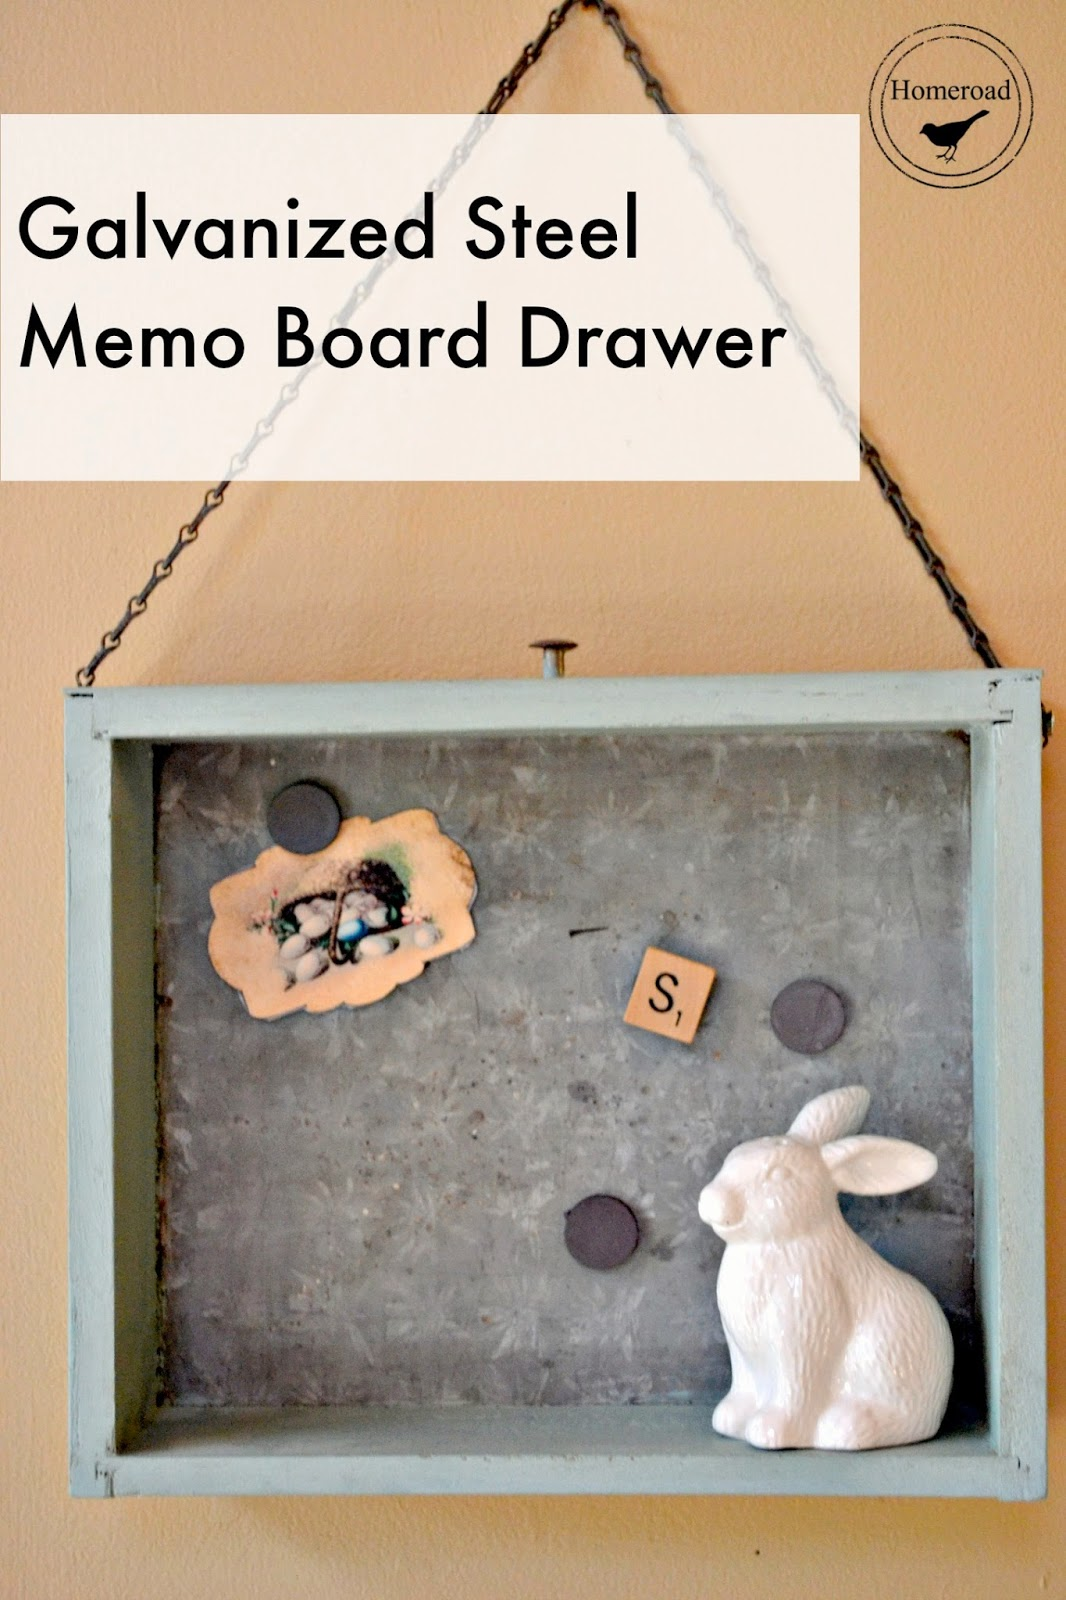 Galvanized Steel Memo Board Drawer www.homeroad.net